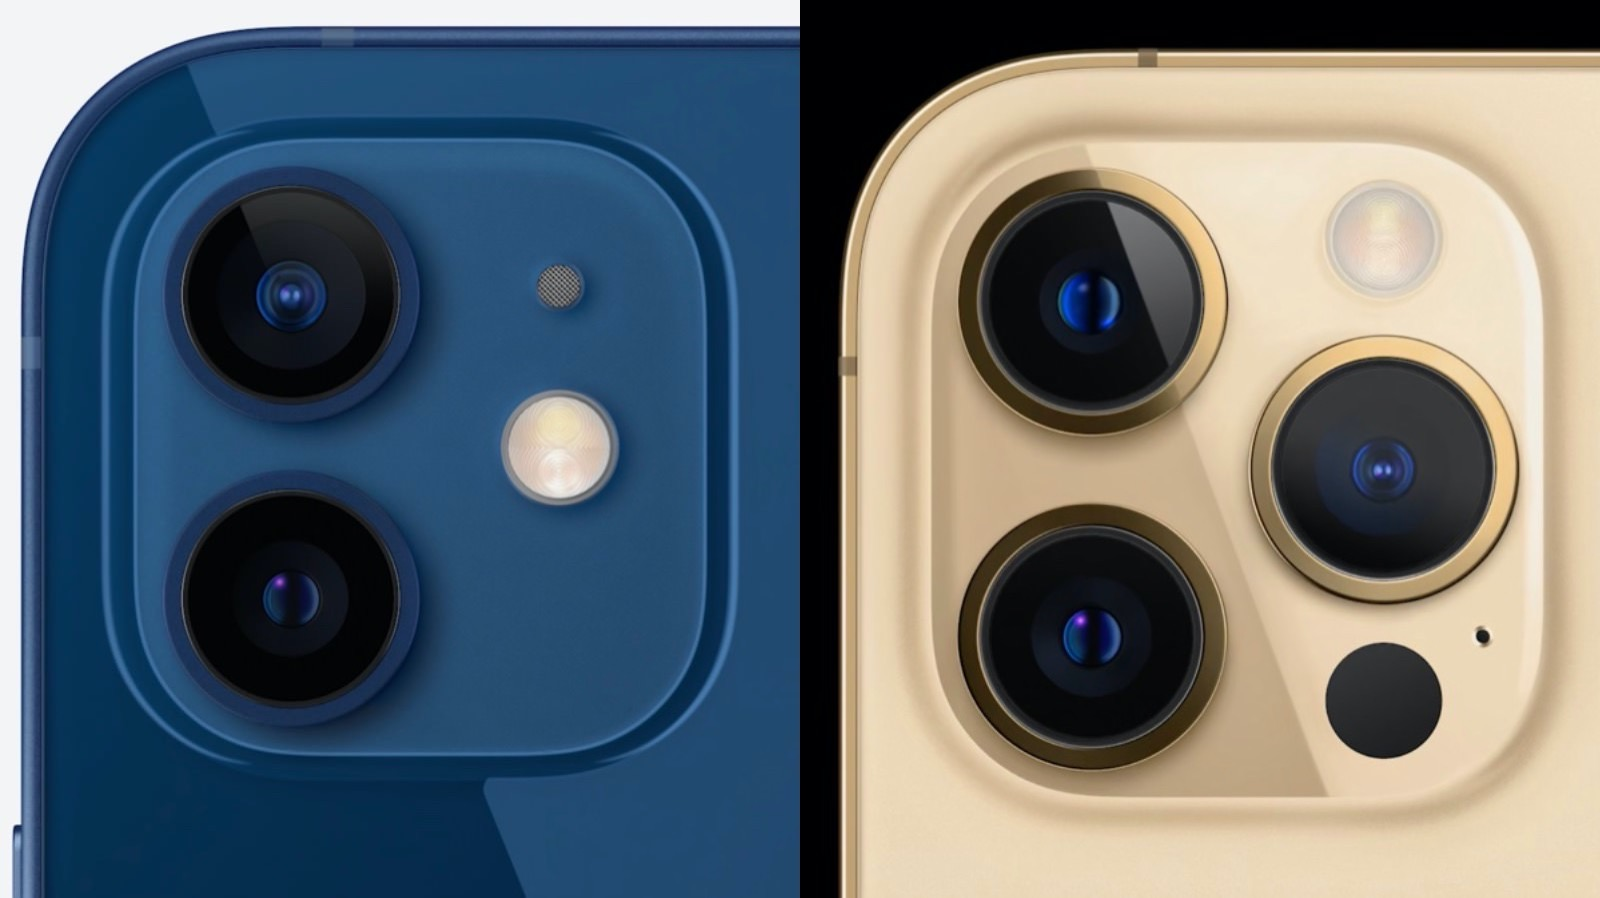 iphone12-and-12pro-camera-comparison.jpg